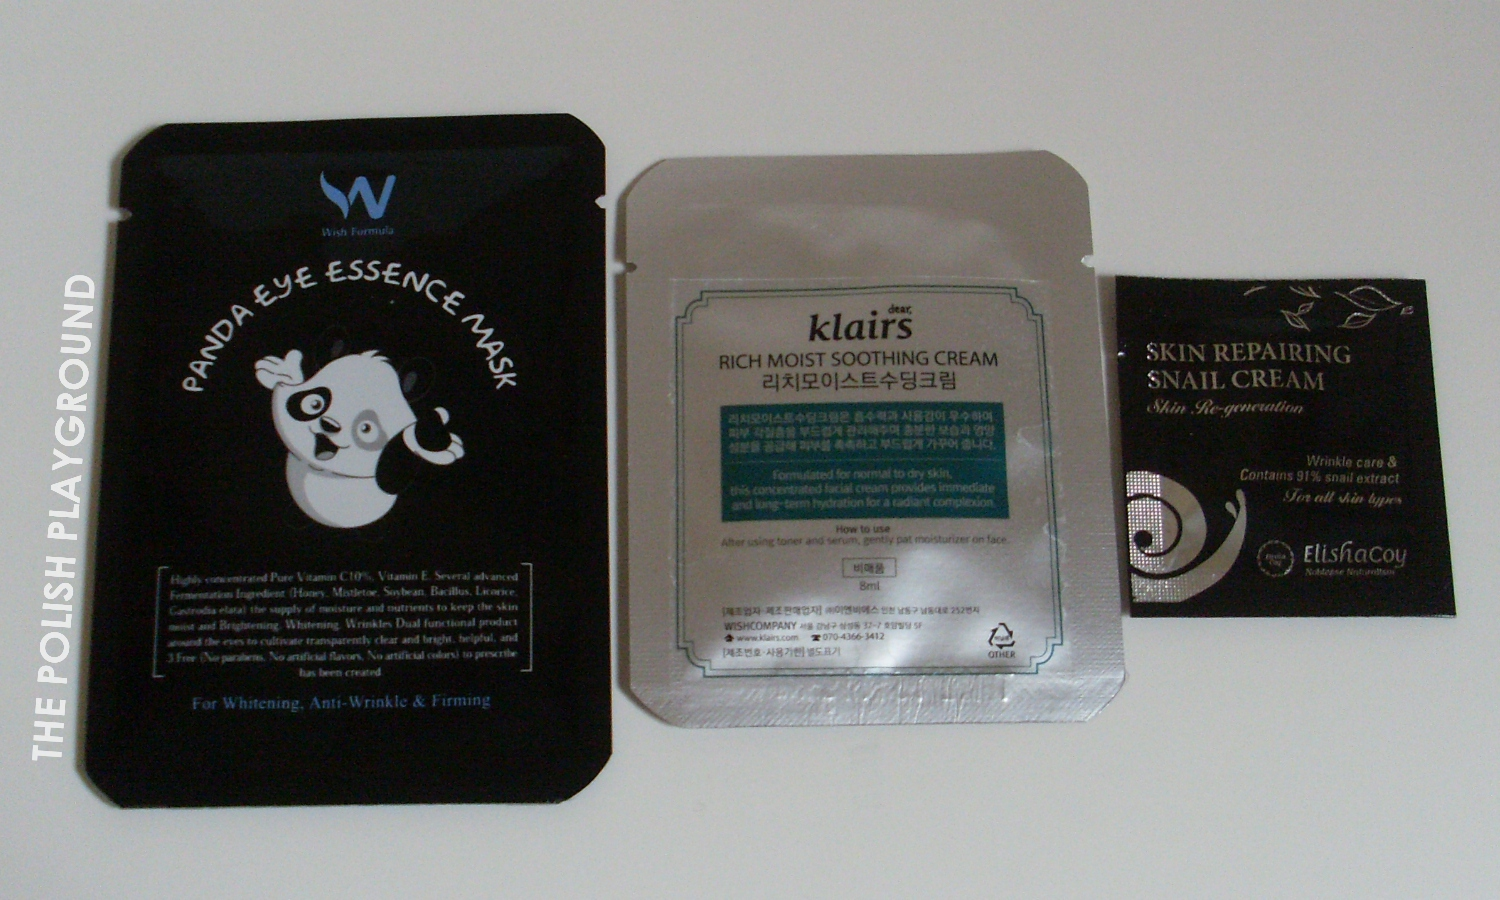 Wishtrend Haul - Wish Formula Panda Eye Essence Mask, samples